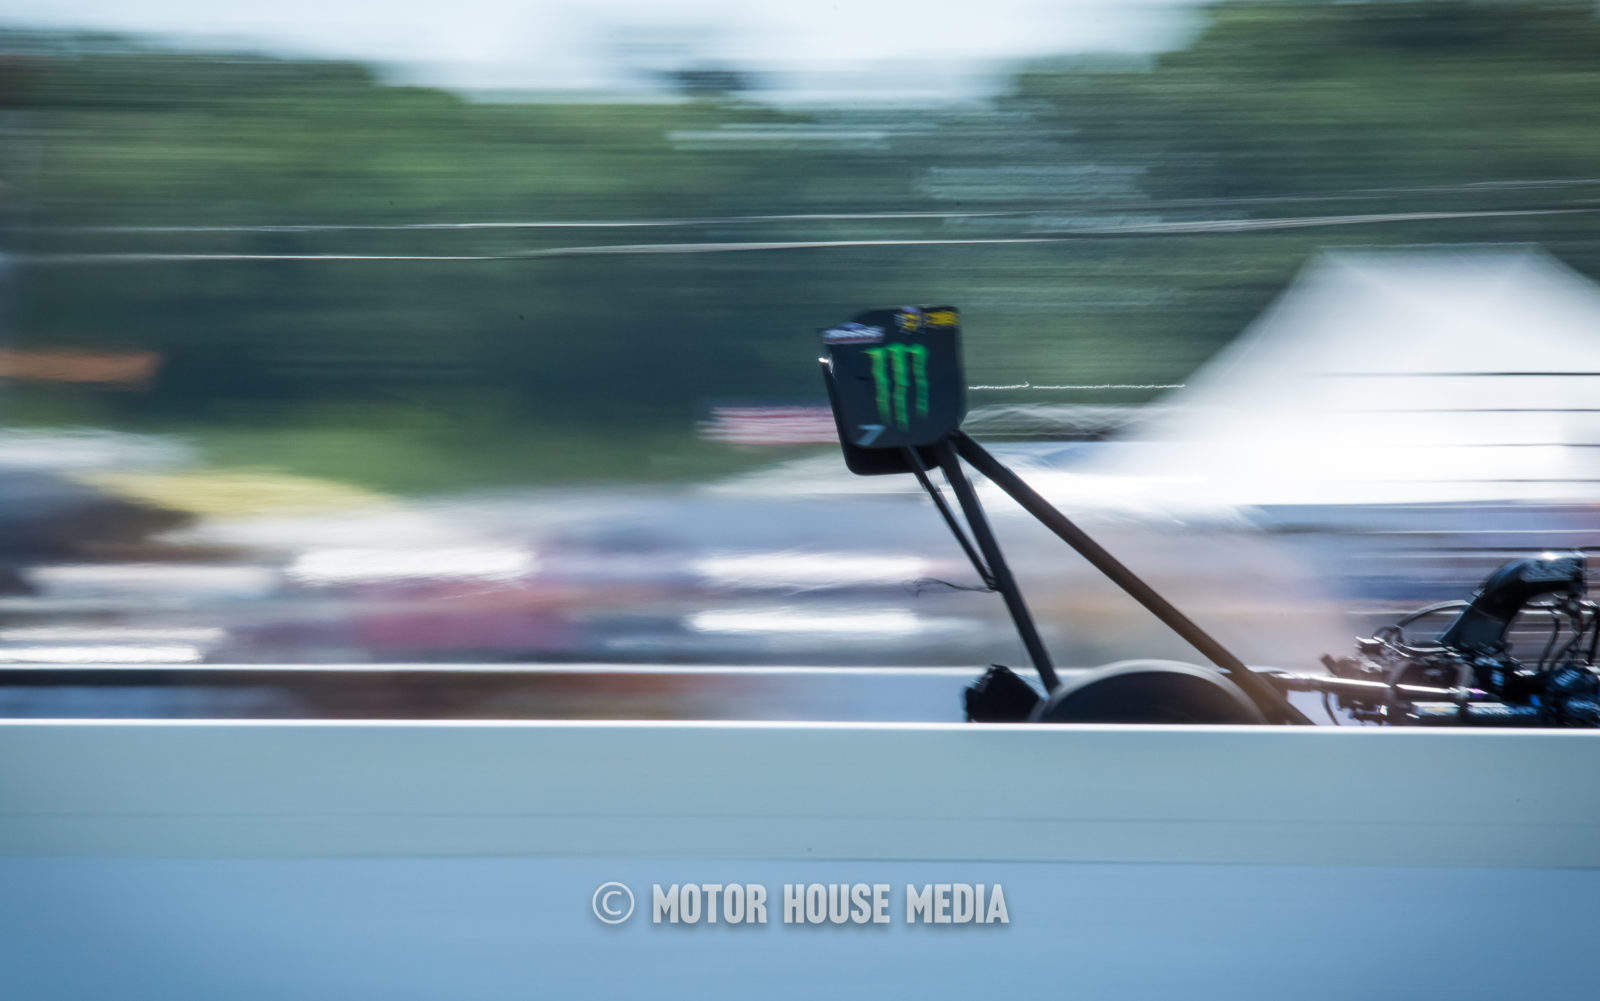 NHRA's Brittany Force through the finish line